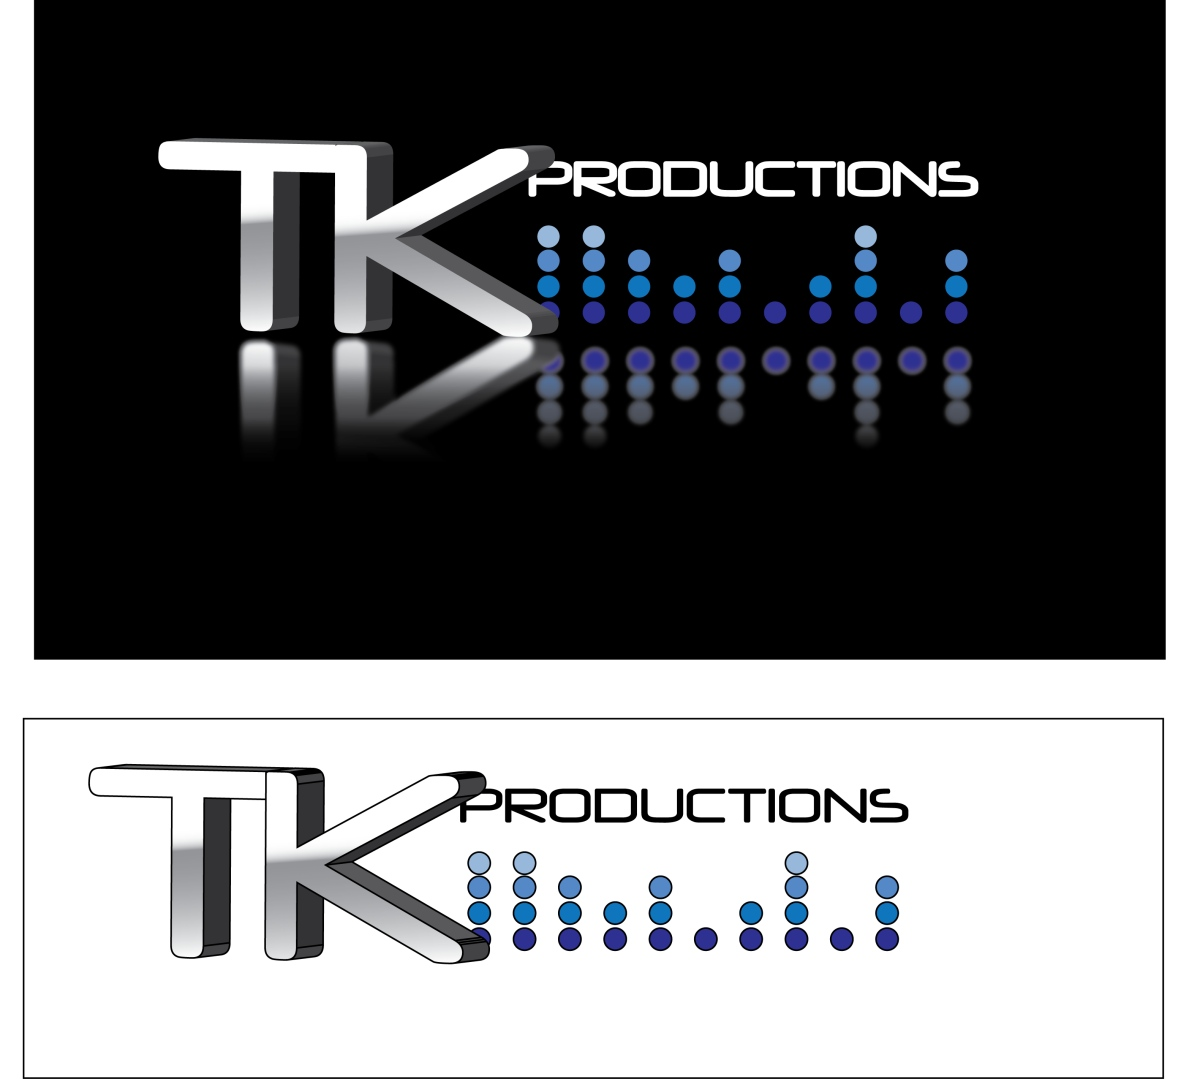 Logo Design by LLP7 - Entry No. 105 in the Logo Design Contest TKProductions Logo Re-Vamp.